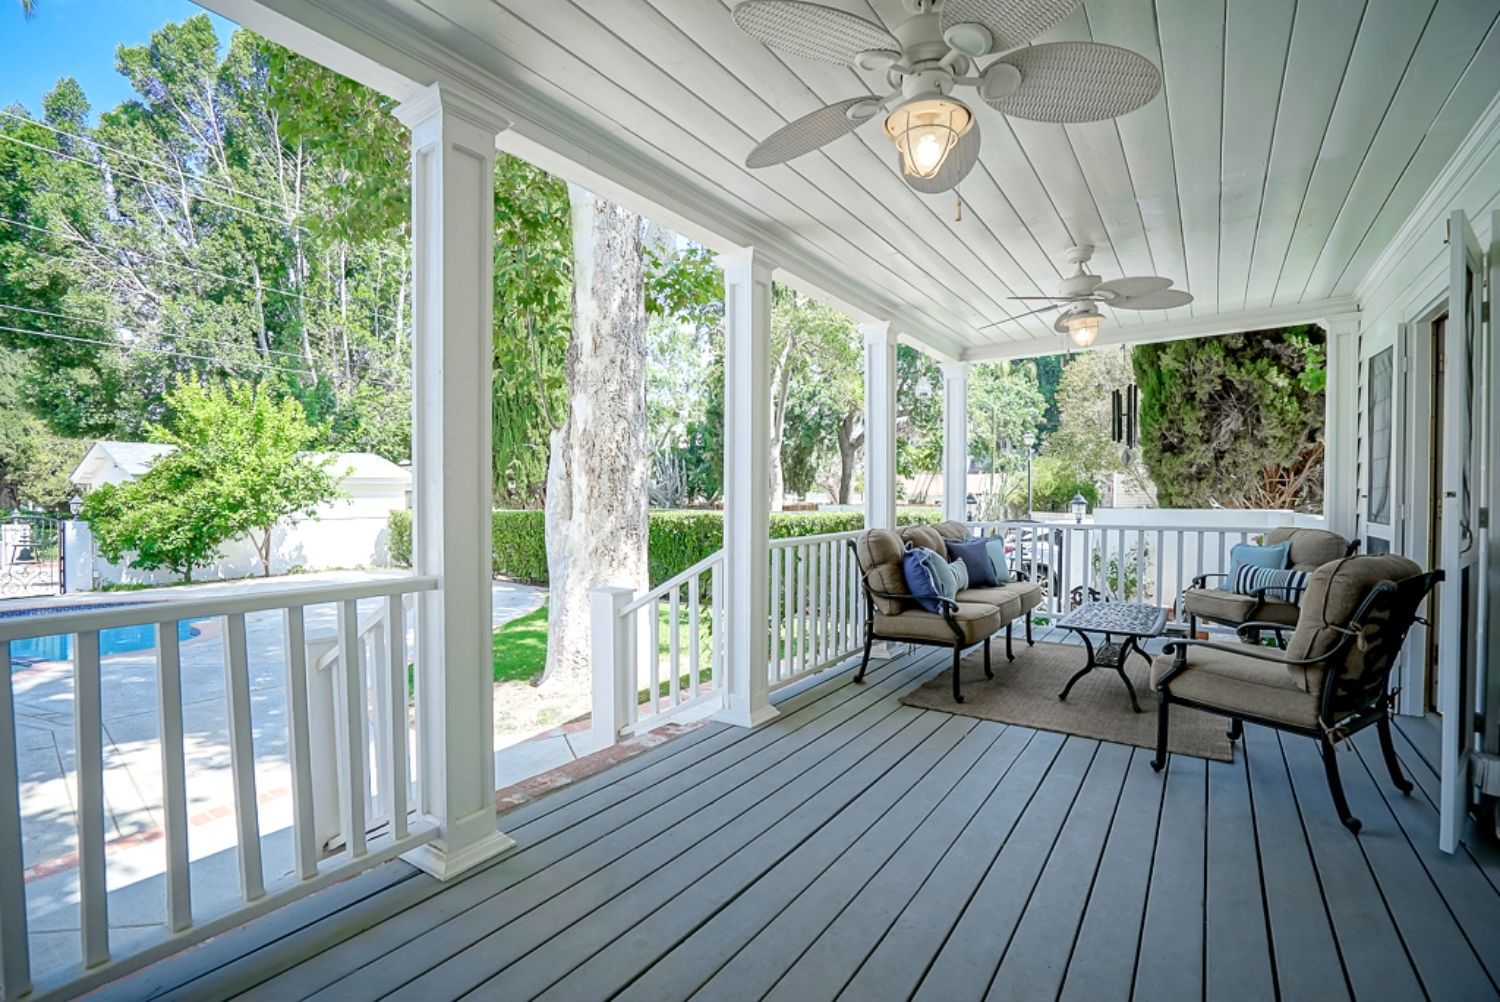 Covered Back Porch Ideas Pictures — Randolph Indoor and ... on Covered Back Porch Ideas id=66781